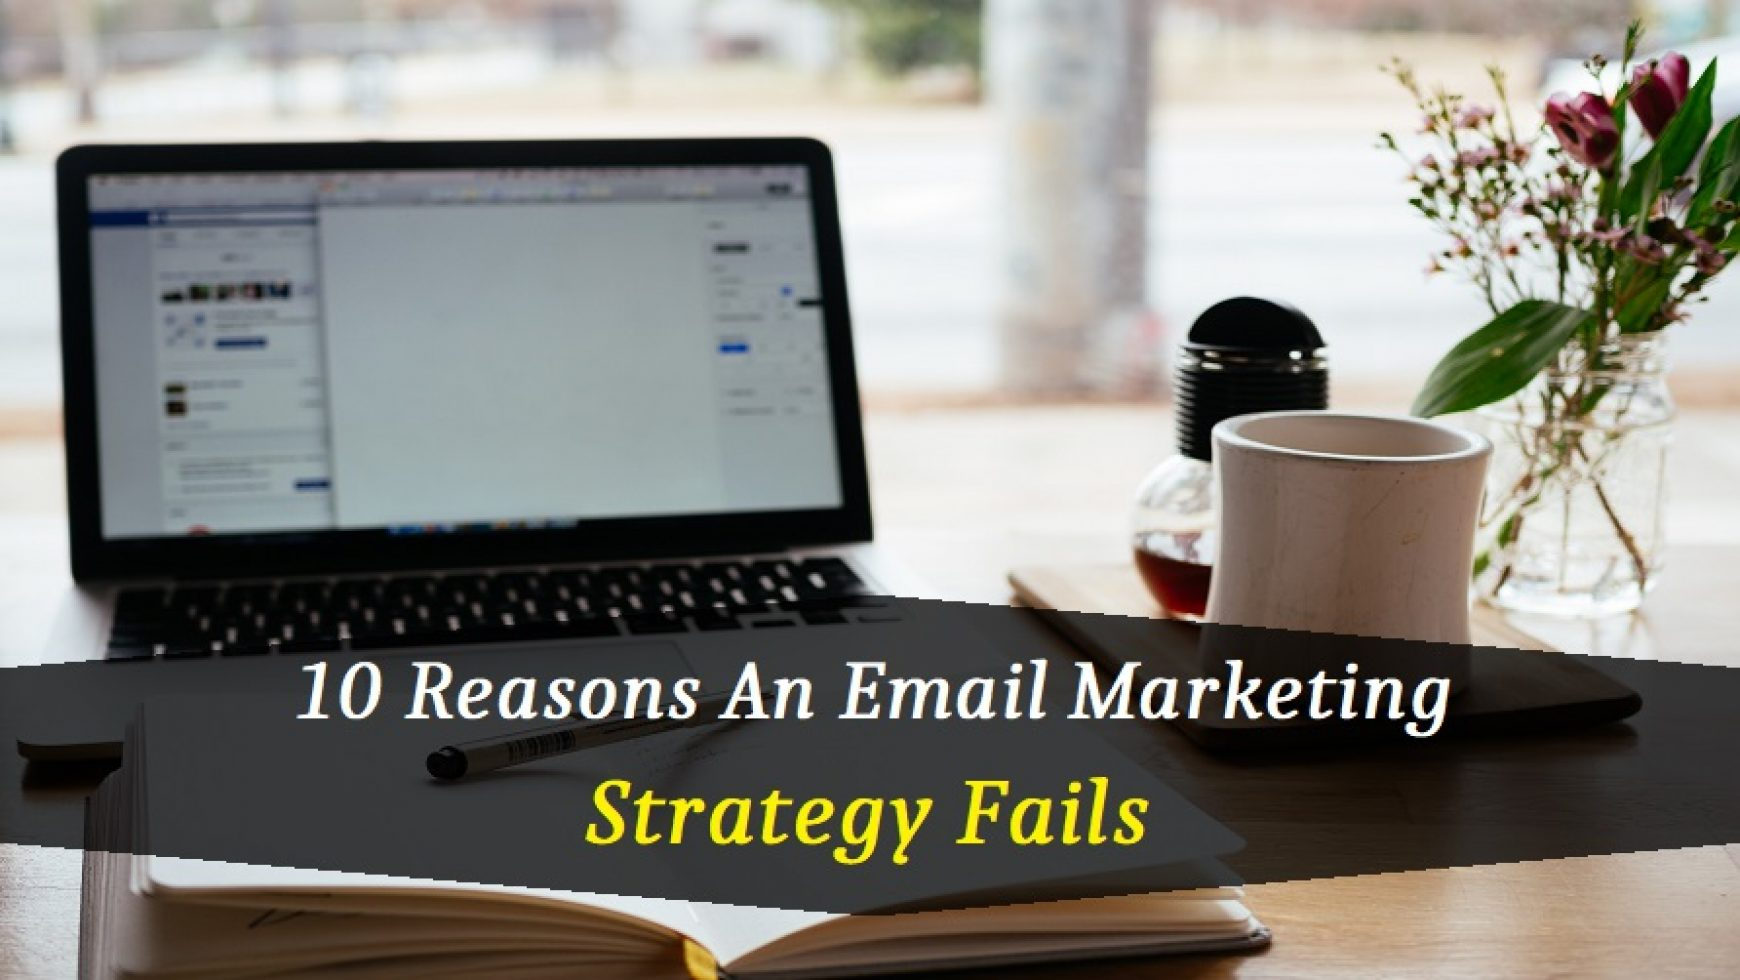 10 Reasons Why An Email Marketing Strategy Fails